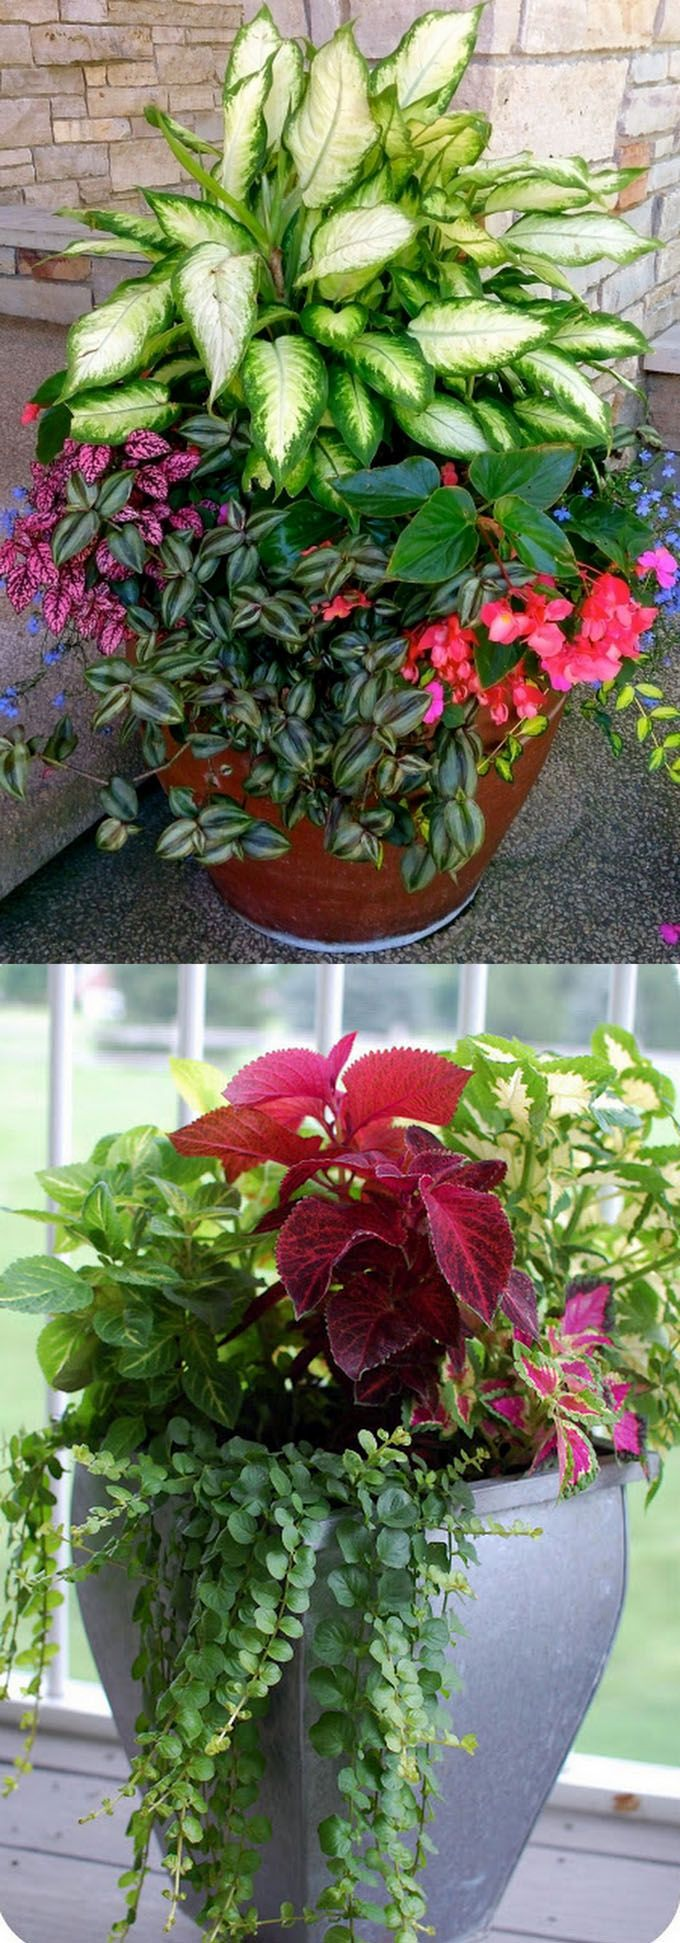 17 of 2017's best Potted Plants ideas on Pinterest